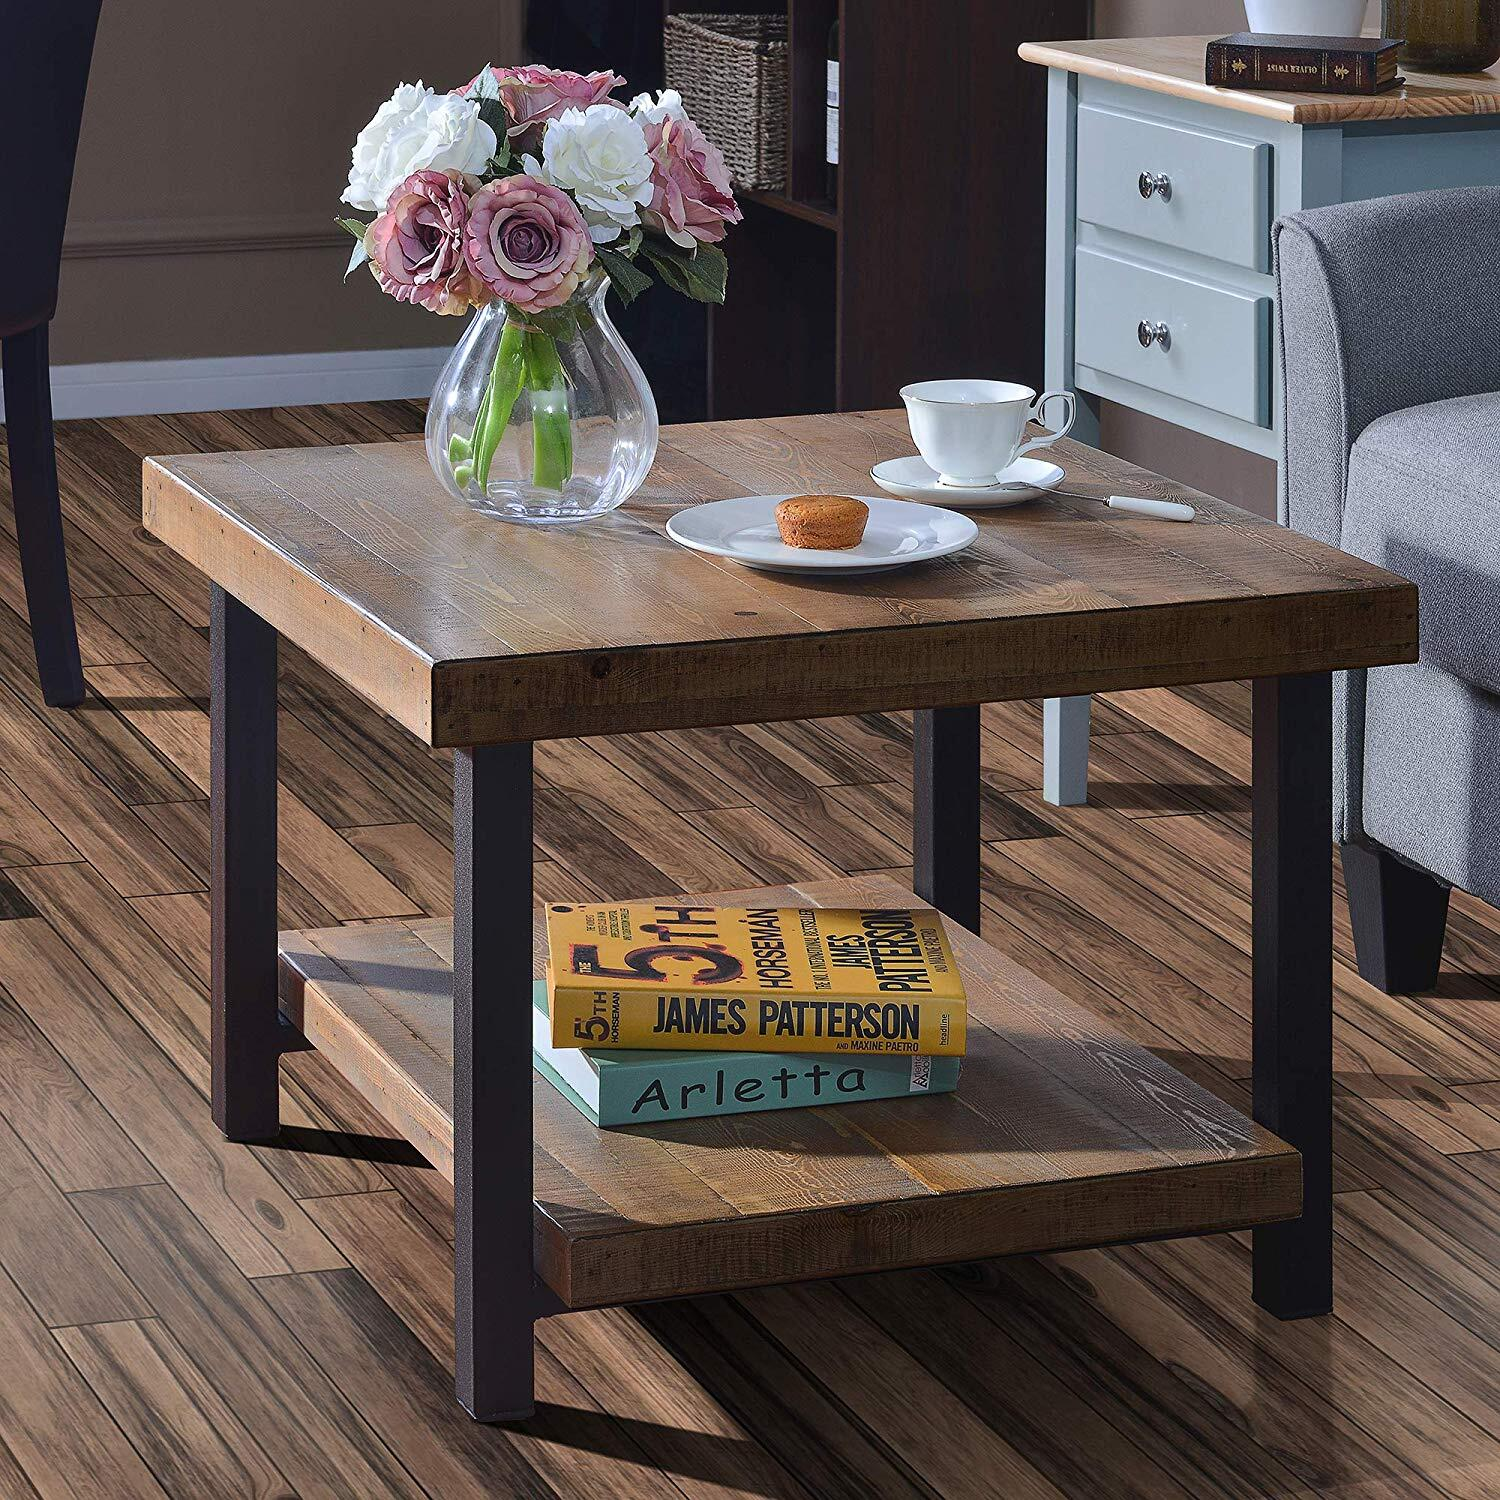 Shop hawkinswoodshop.com for discounted solid wood & metal modern, traditional, contemporary, custom & farmhouse furniture including our Small Industrial Farmhouse Coffee Table. Ask about our free nationwide freight delivery or assembly services today.